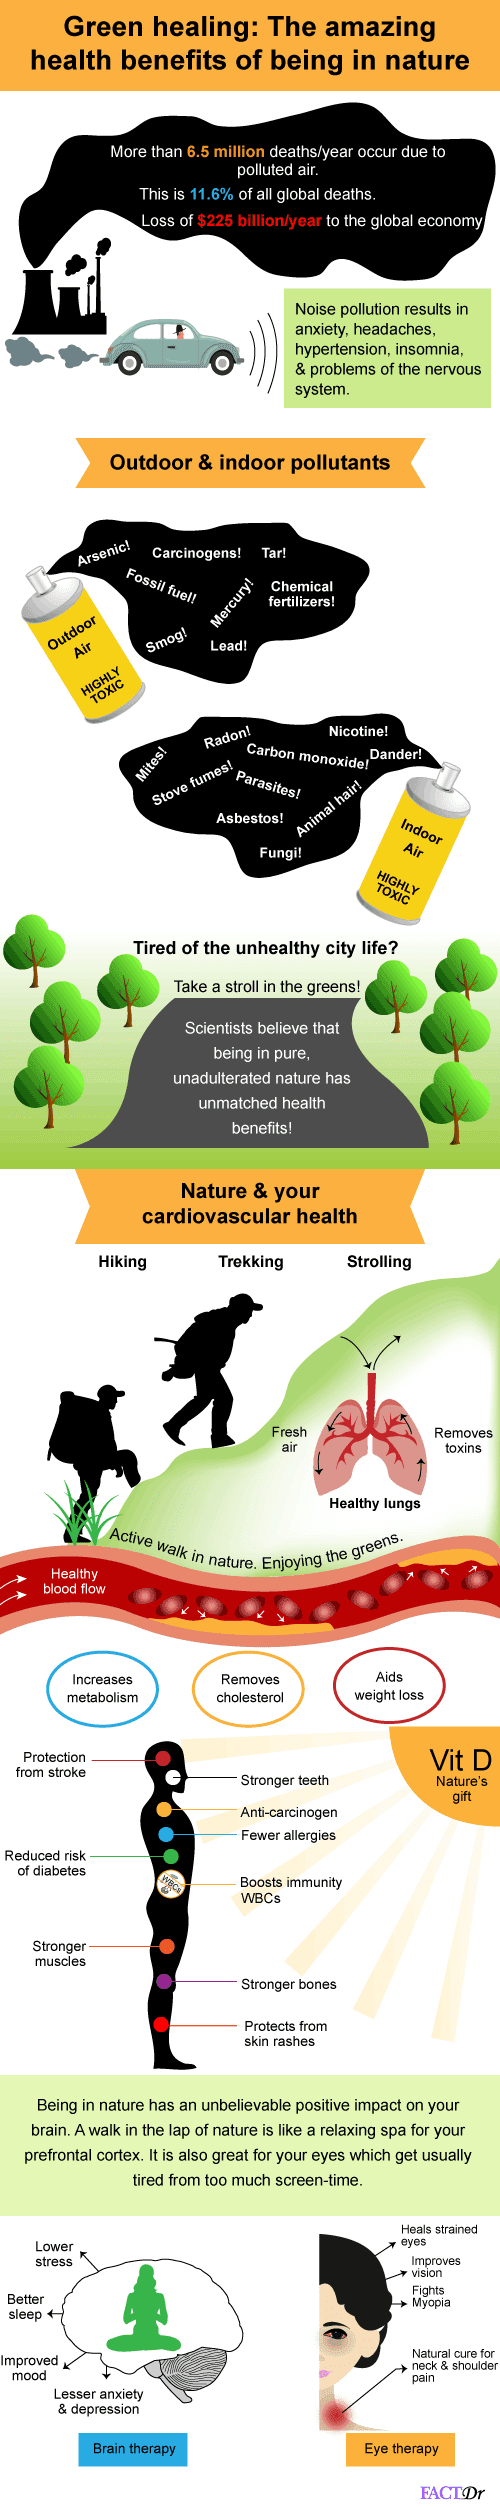 Green Healing: The amazing health benefits of being in nature